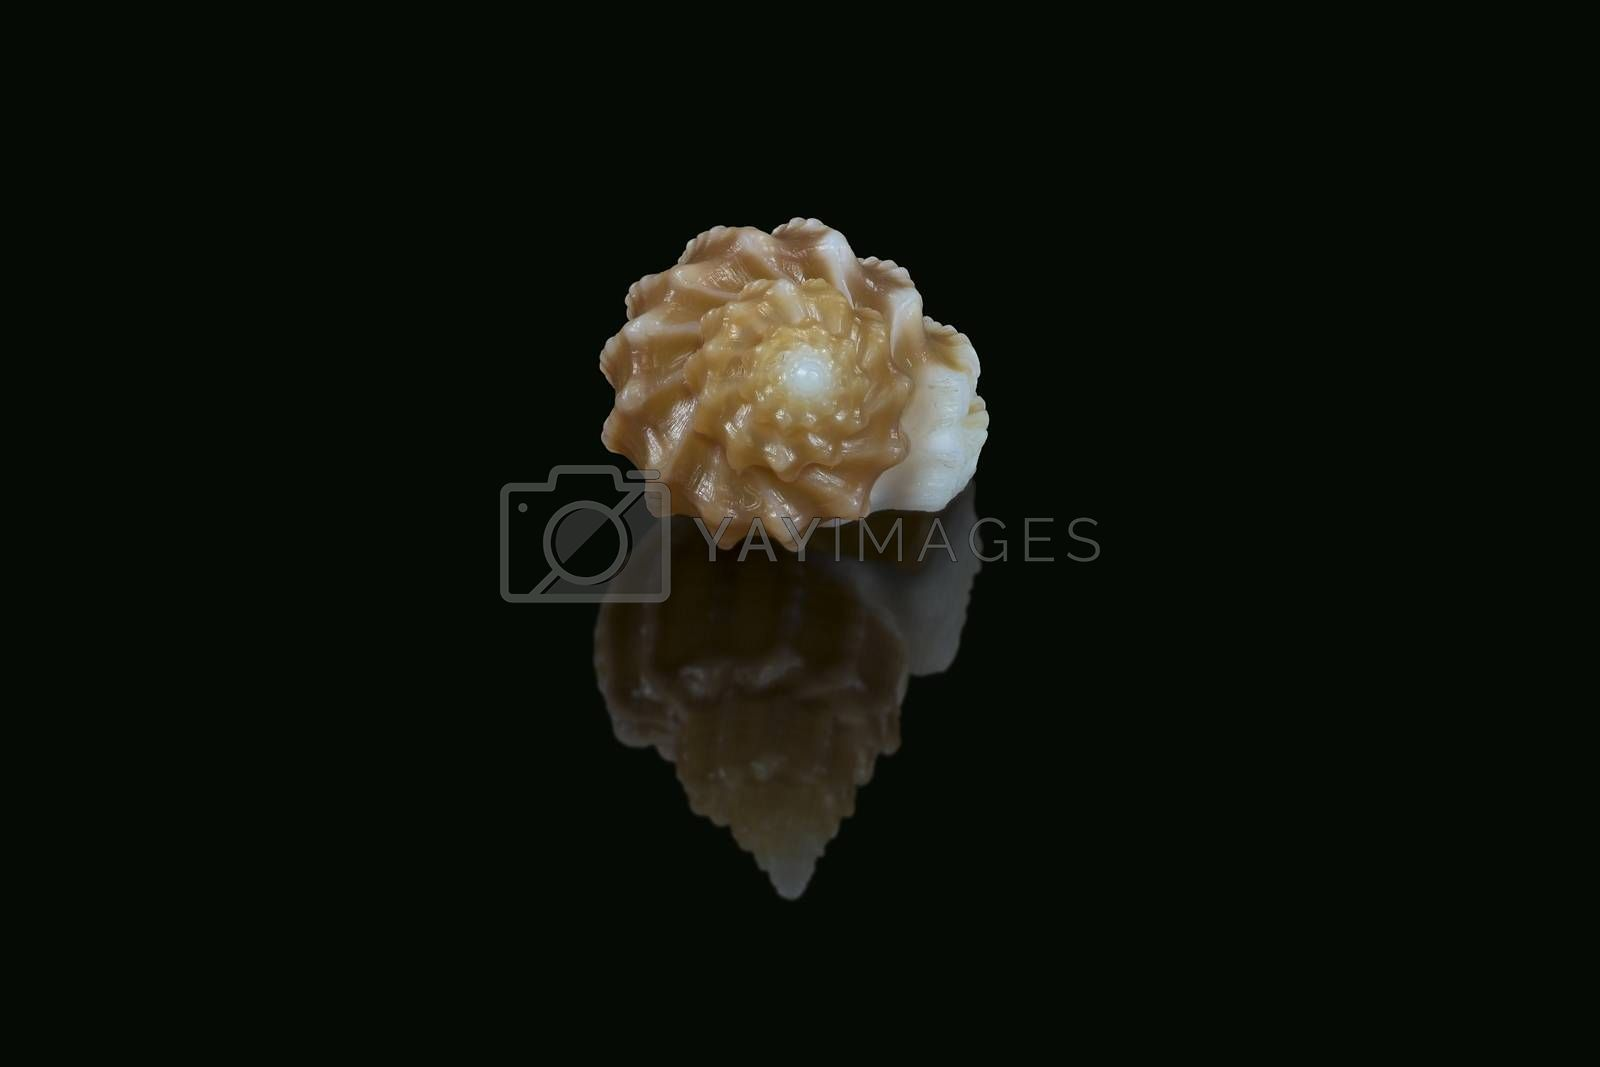 Side view of Shell of Scalptia bicolor or Trigonostoma bicolor on black background. It is a marine gastropod mollusk in the family of Cancellariidae, genus of sea snails. L1,8xW1,2x0H0,9 cm